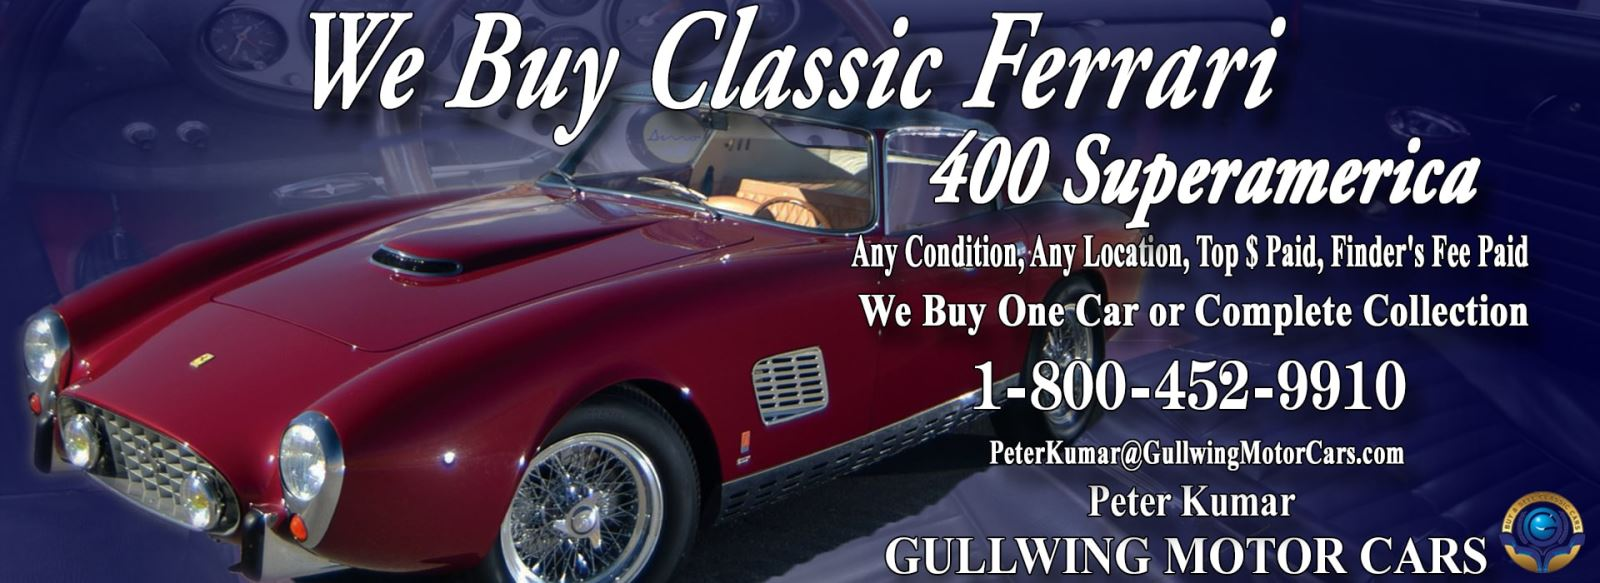 Classic Ferrari 400 Superamerica for sale, we buy vintage Ferrari 400 Superamerica. Call Peter Kumar. Gullwing Motor